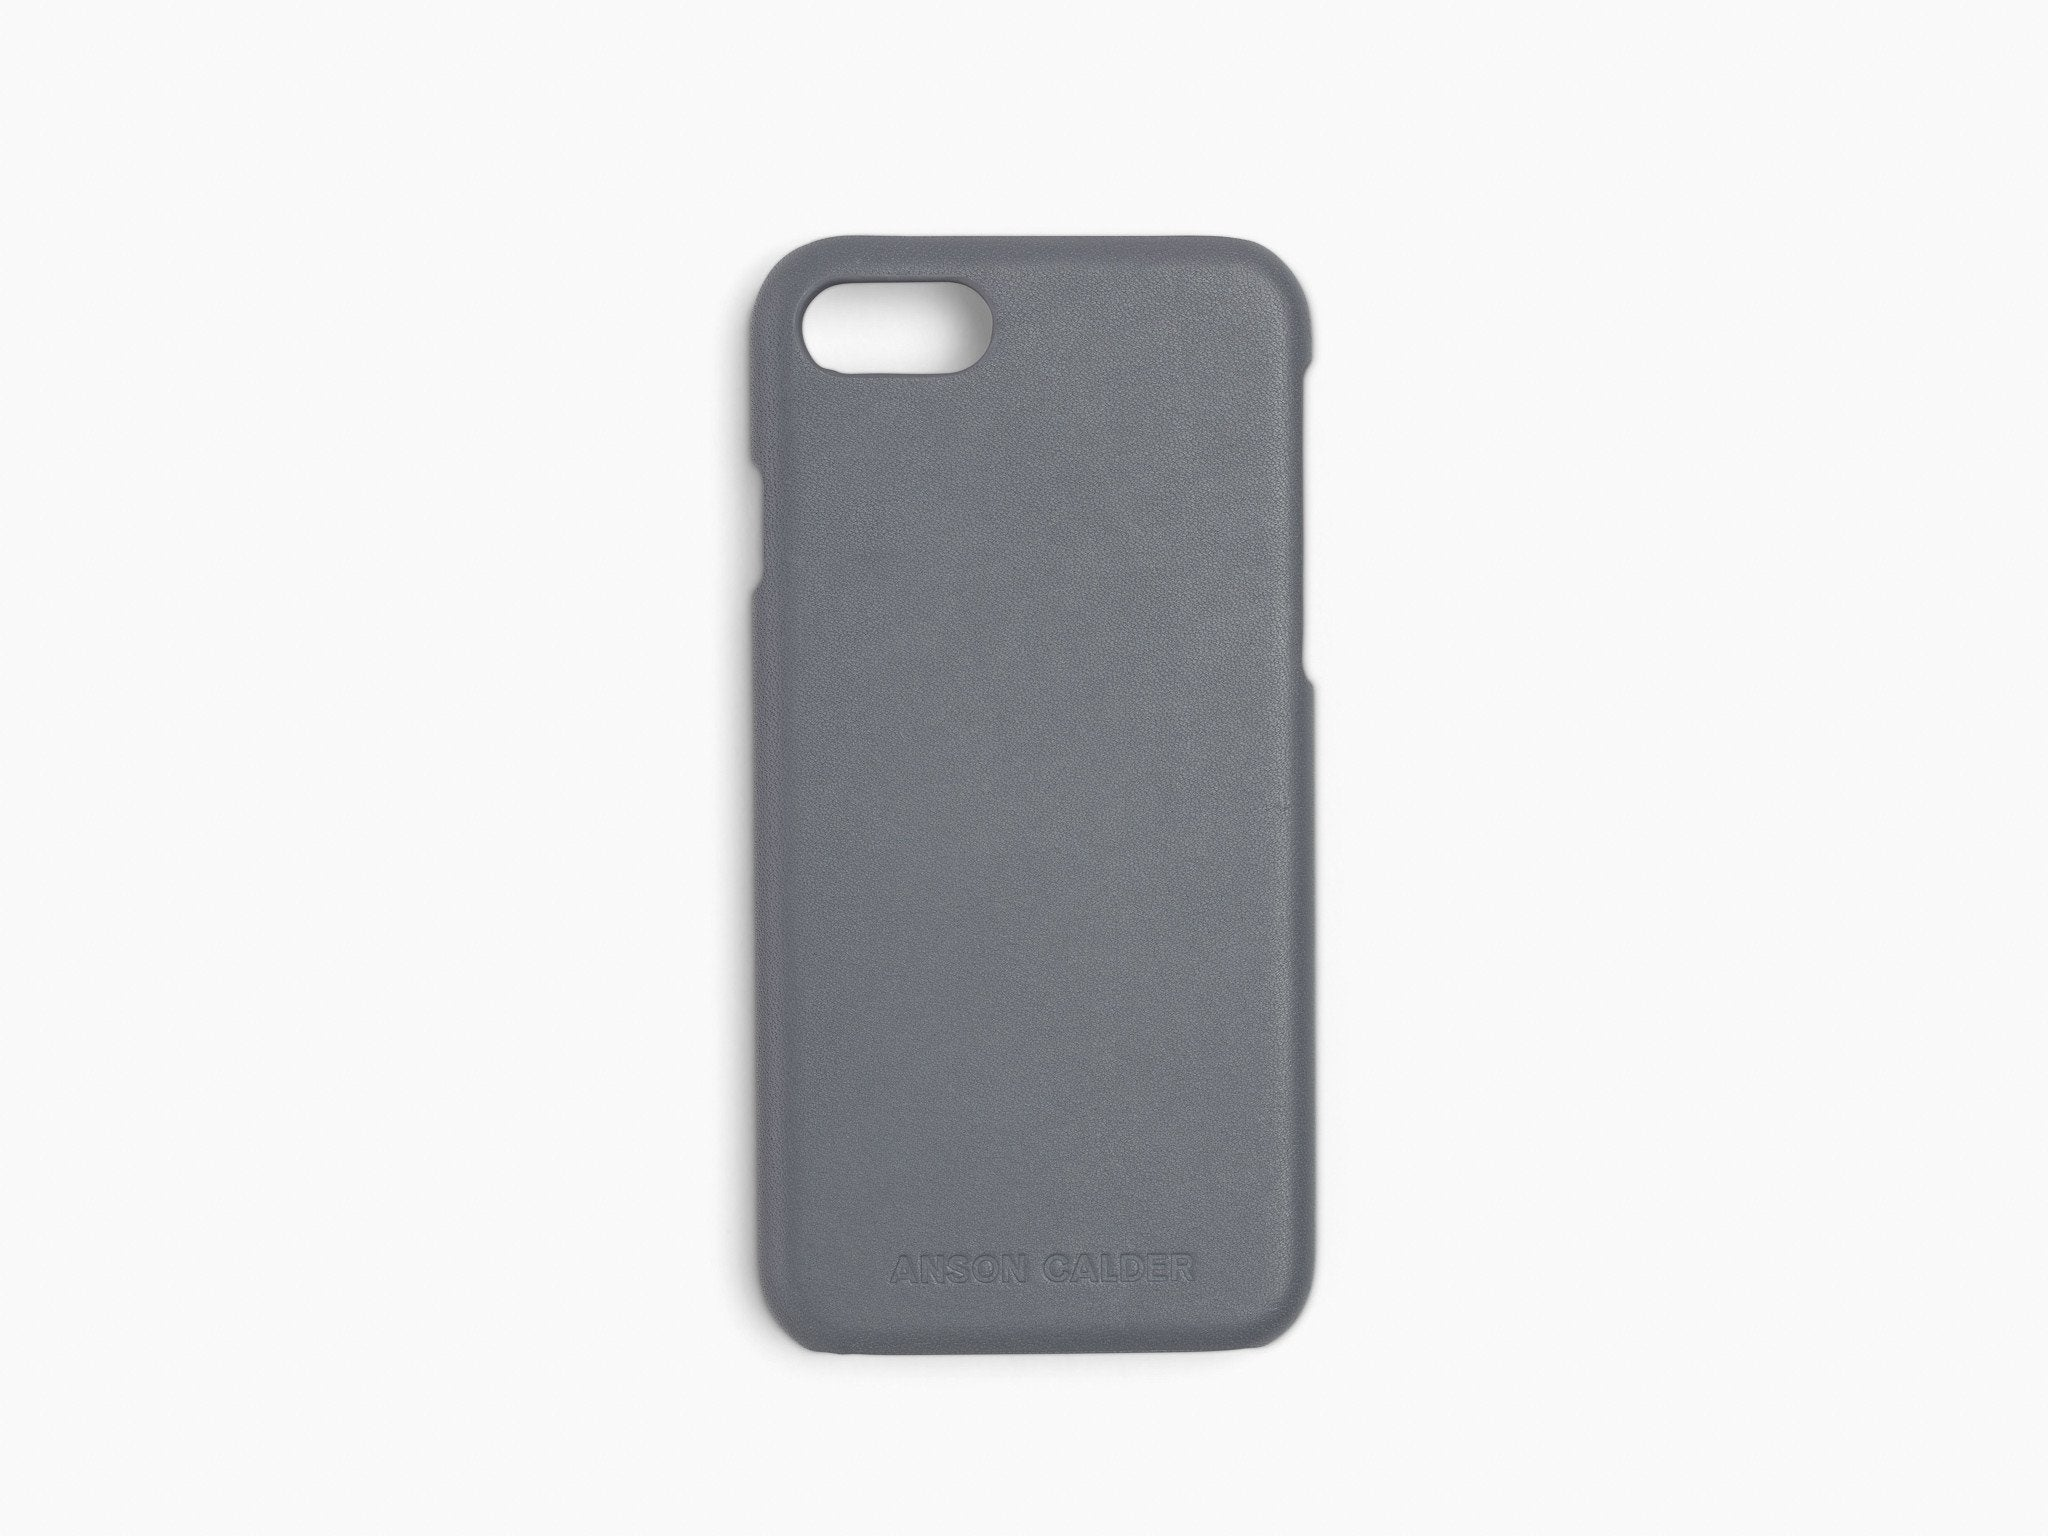 CALFSKIN iPHONE CASE CASES ANSON CALDER iPhone 7 !iphone7 _steel-grey